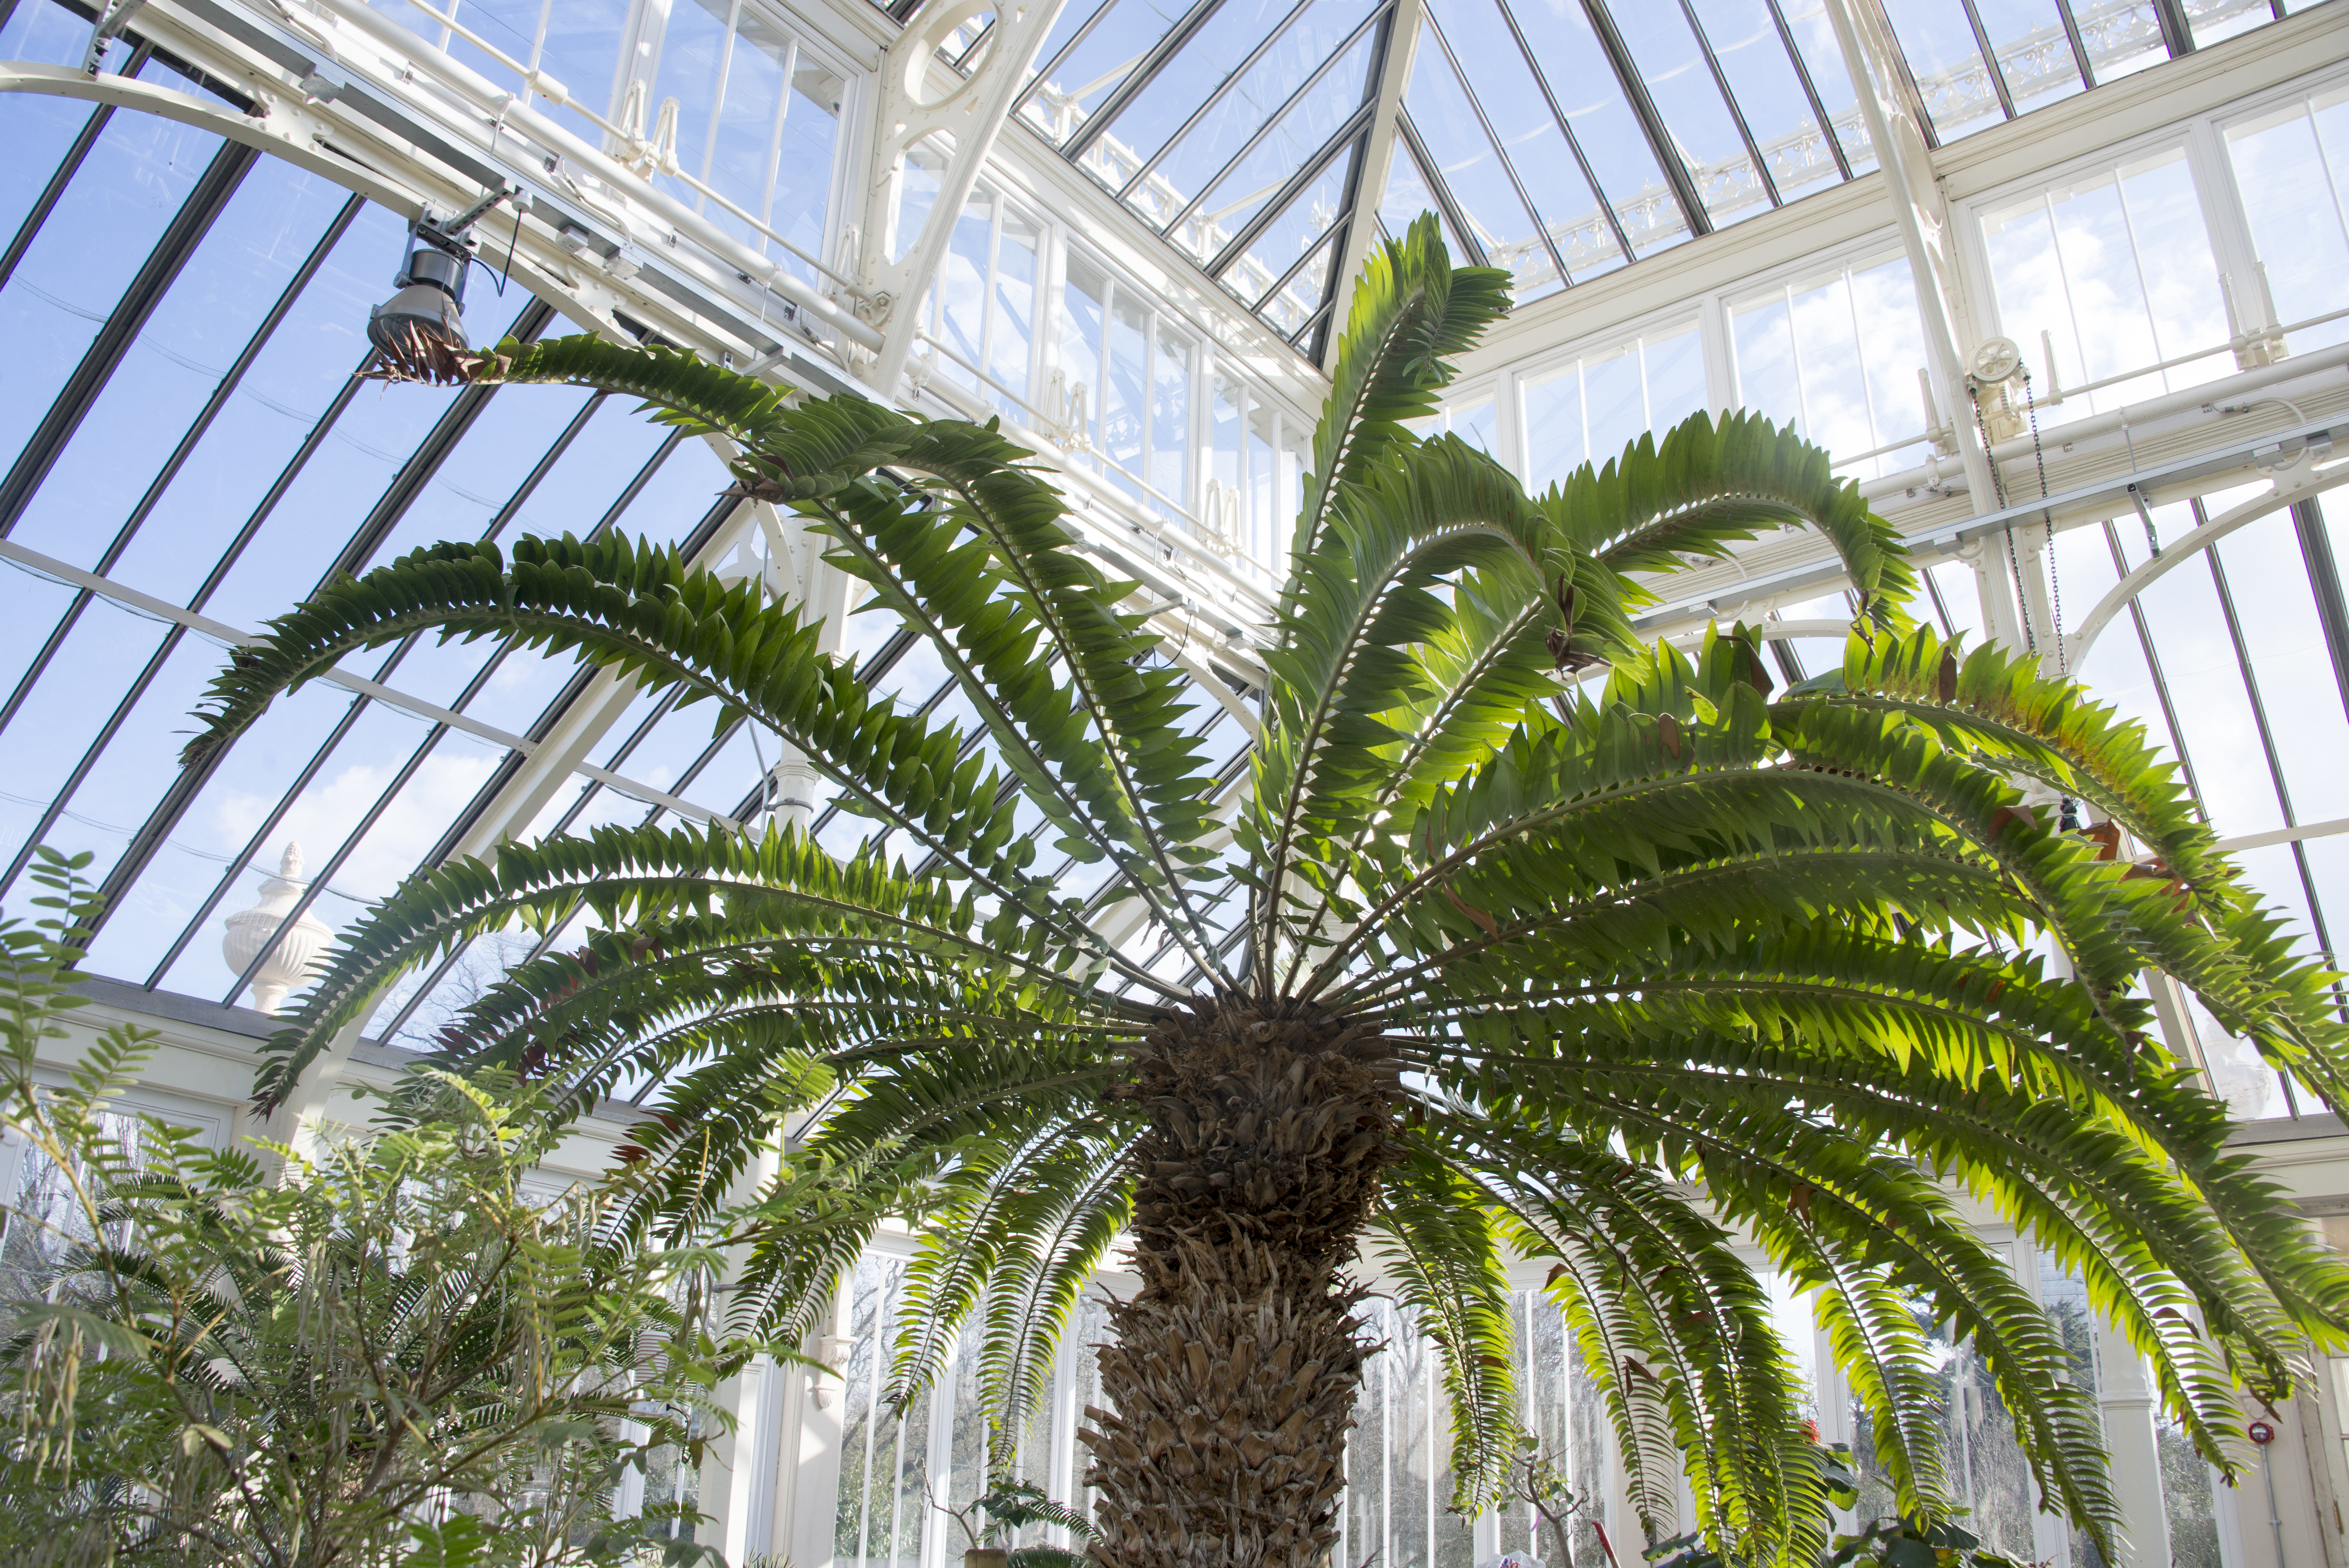 Encephalartos Woodii in the Temperate House, RBG Kew / Jeff Eden